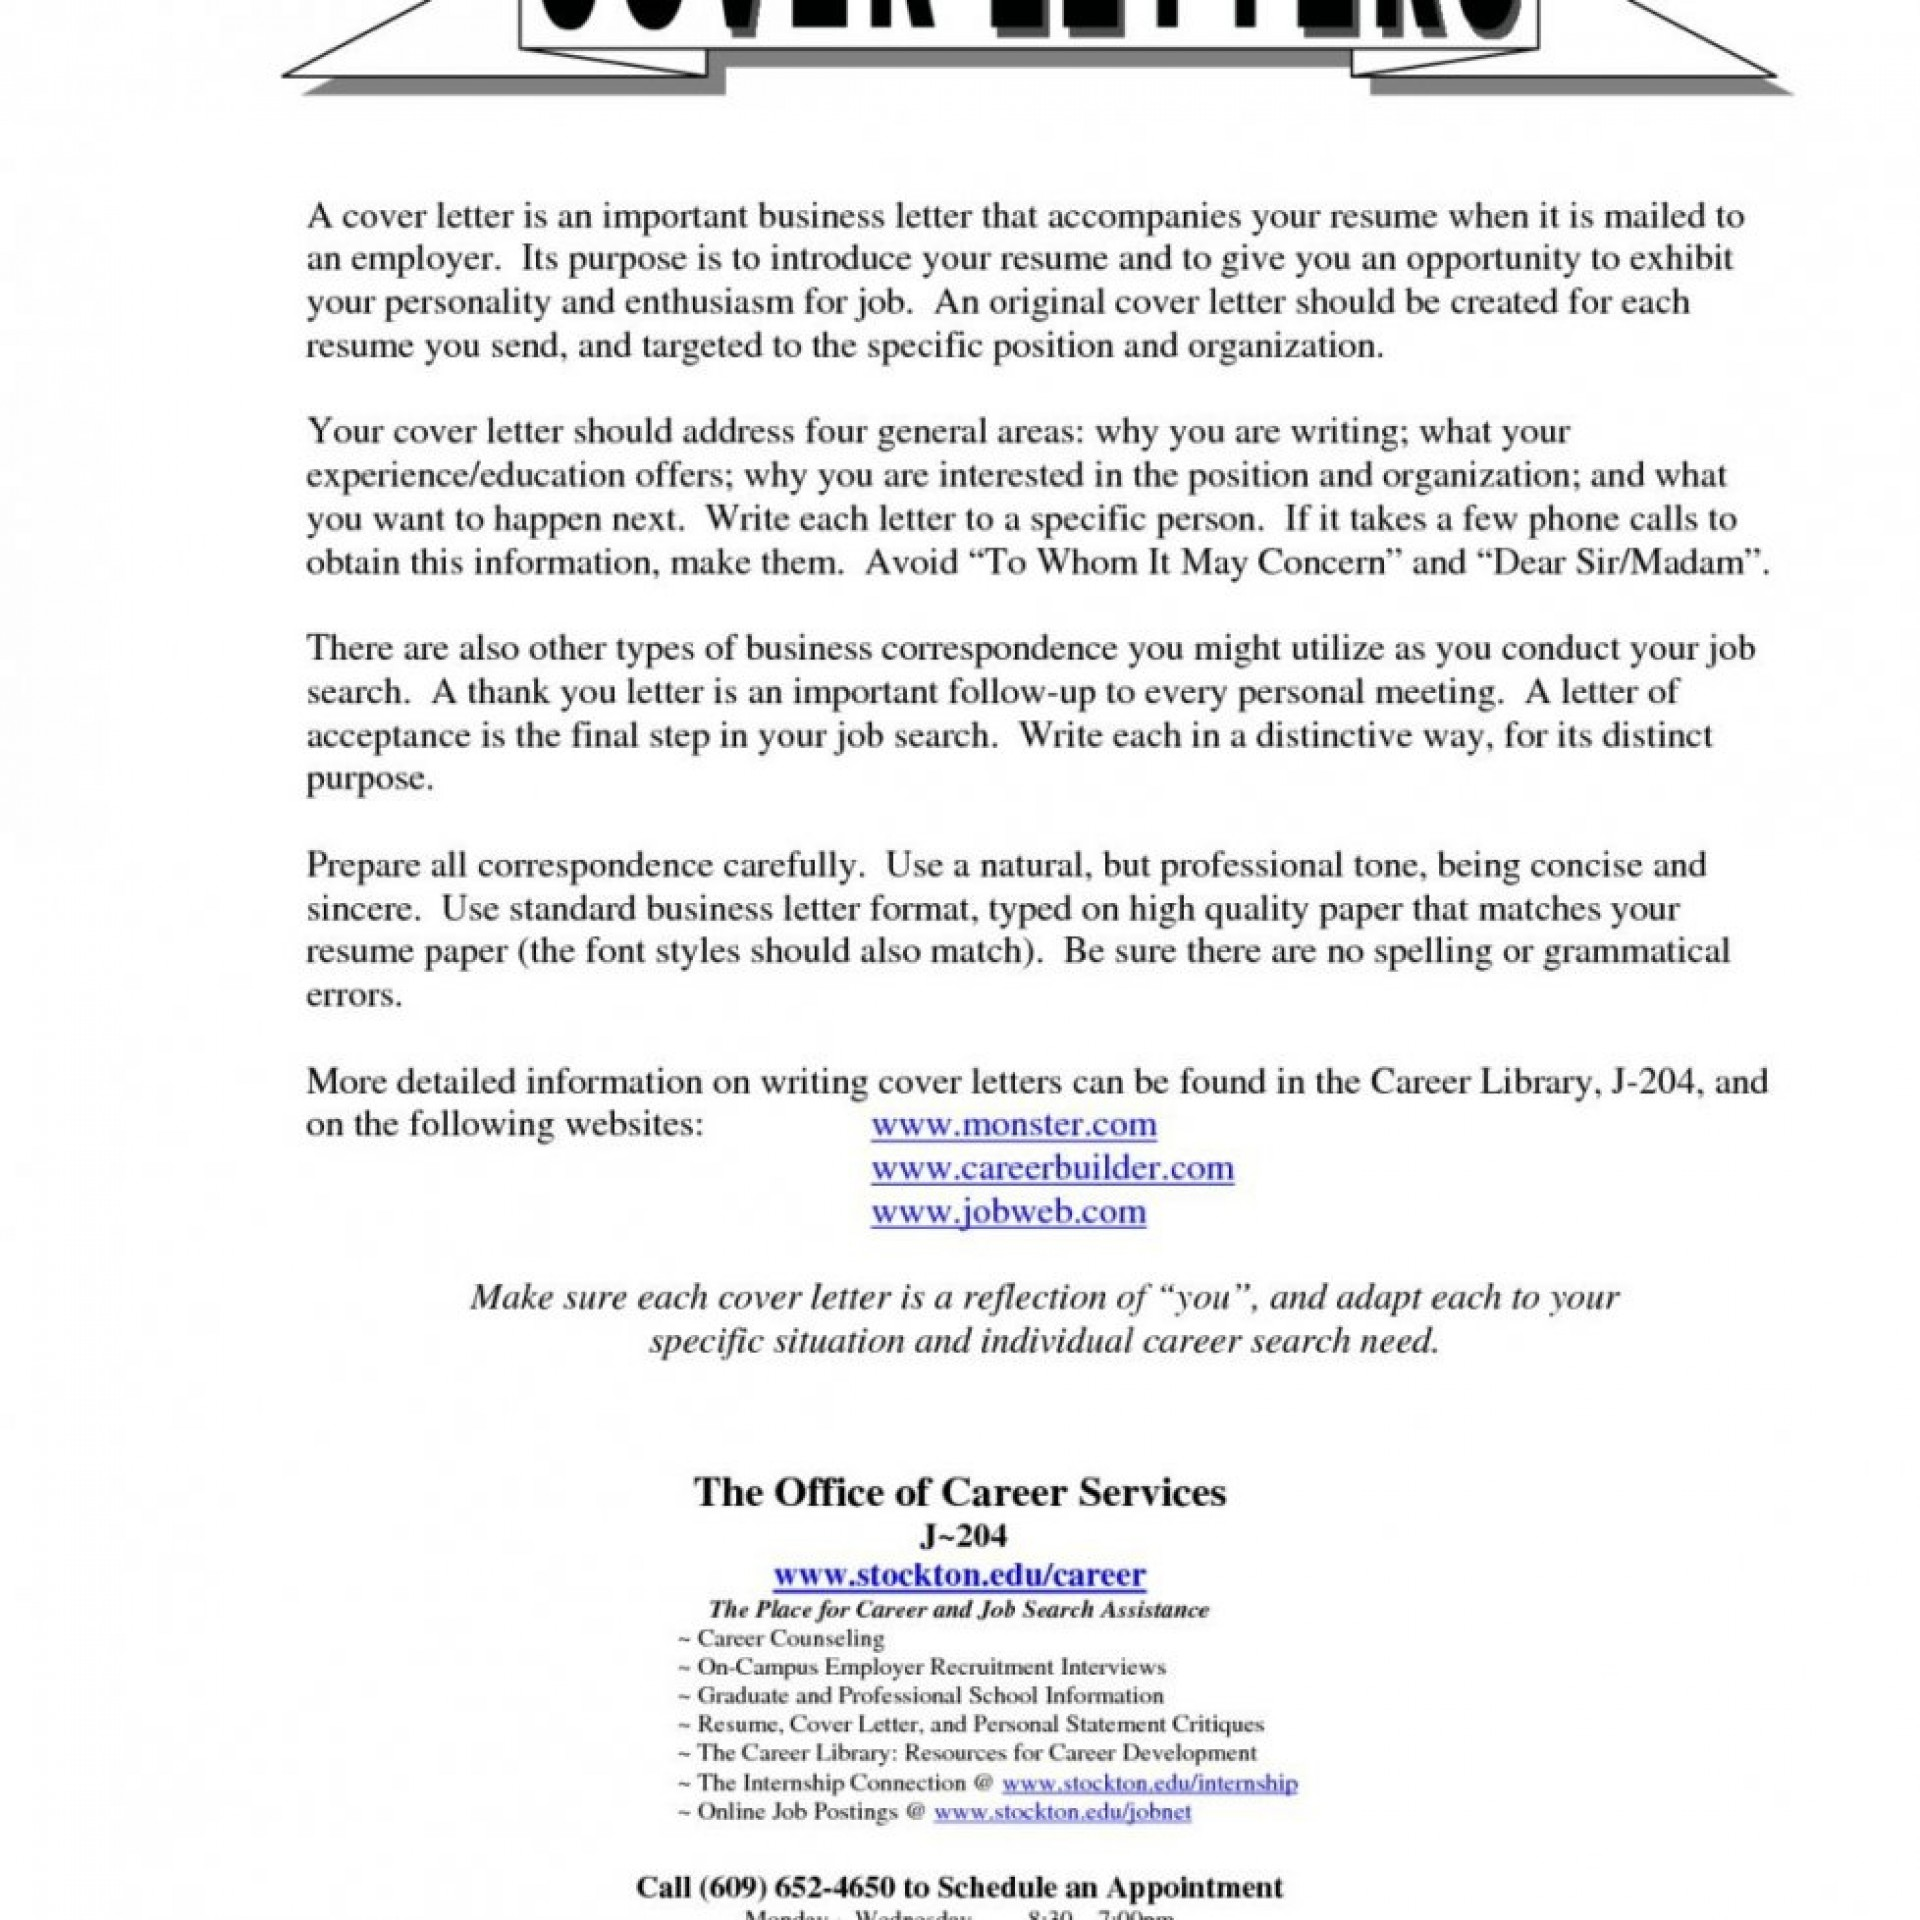 004 Cover Letter Research Paper Example For Res Striking Scientific Publication Examples How To Write A 1920